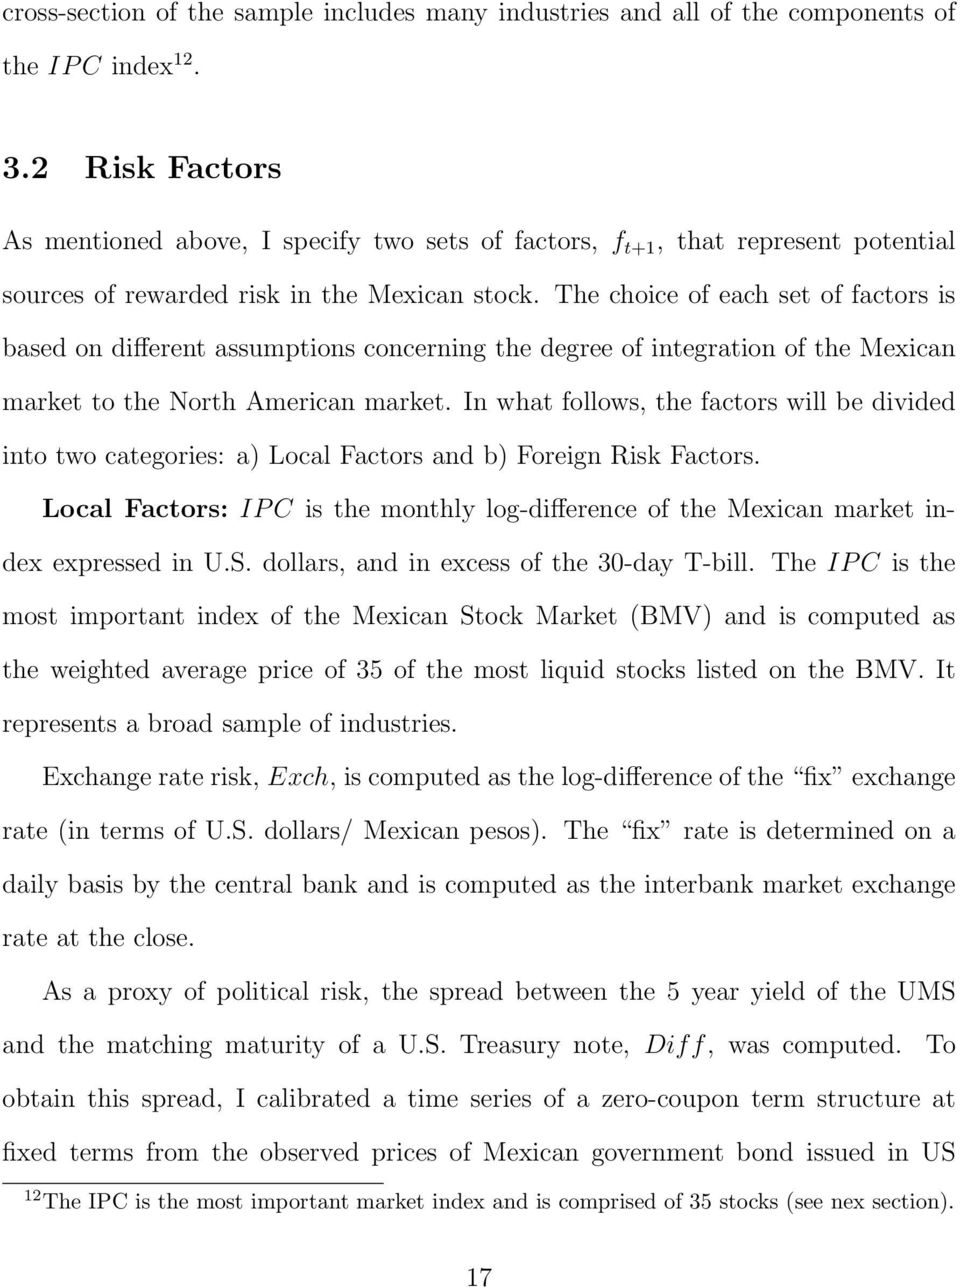 The choice of each set of factors is based on different assumptions concerning the degree of integration of the Mexican market to the North American market.